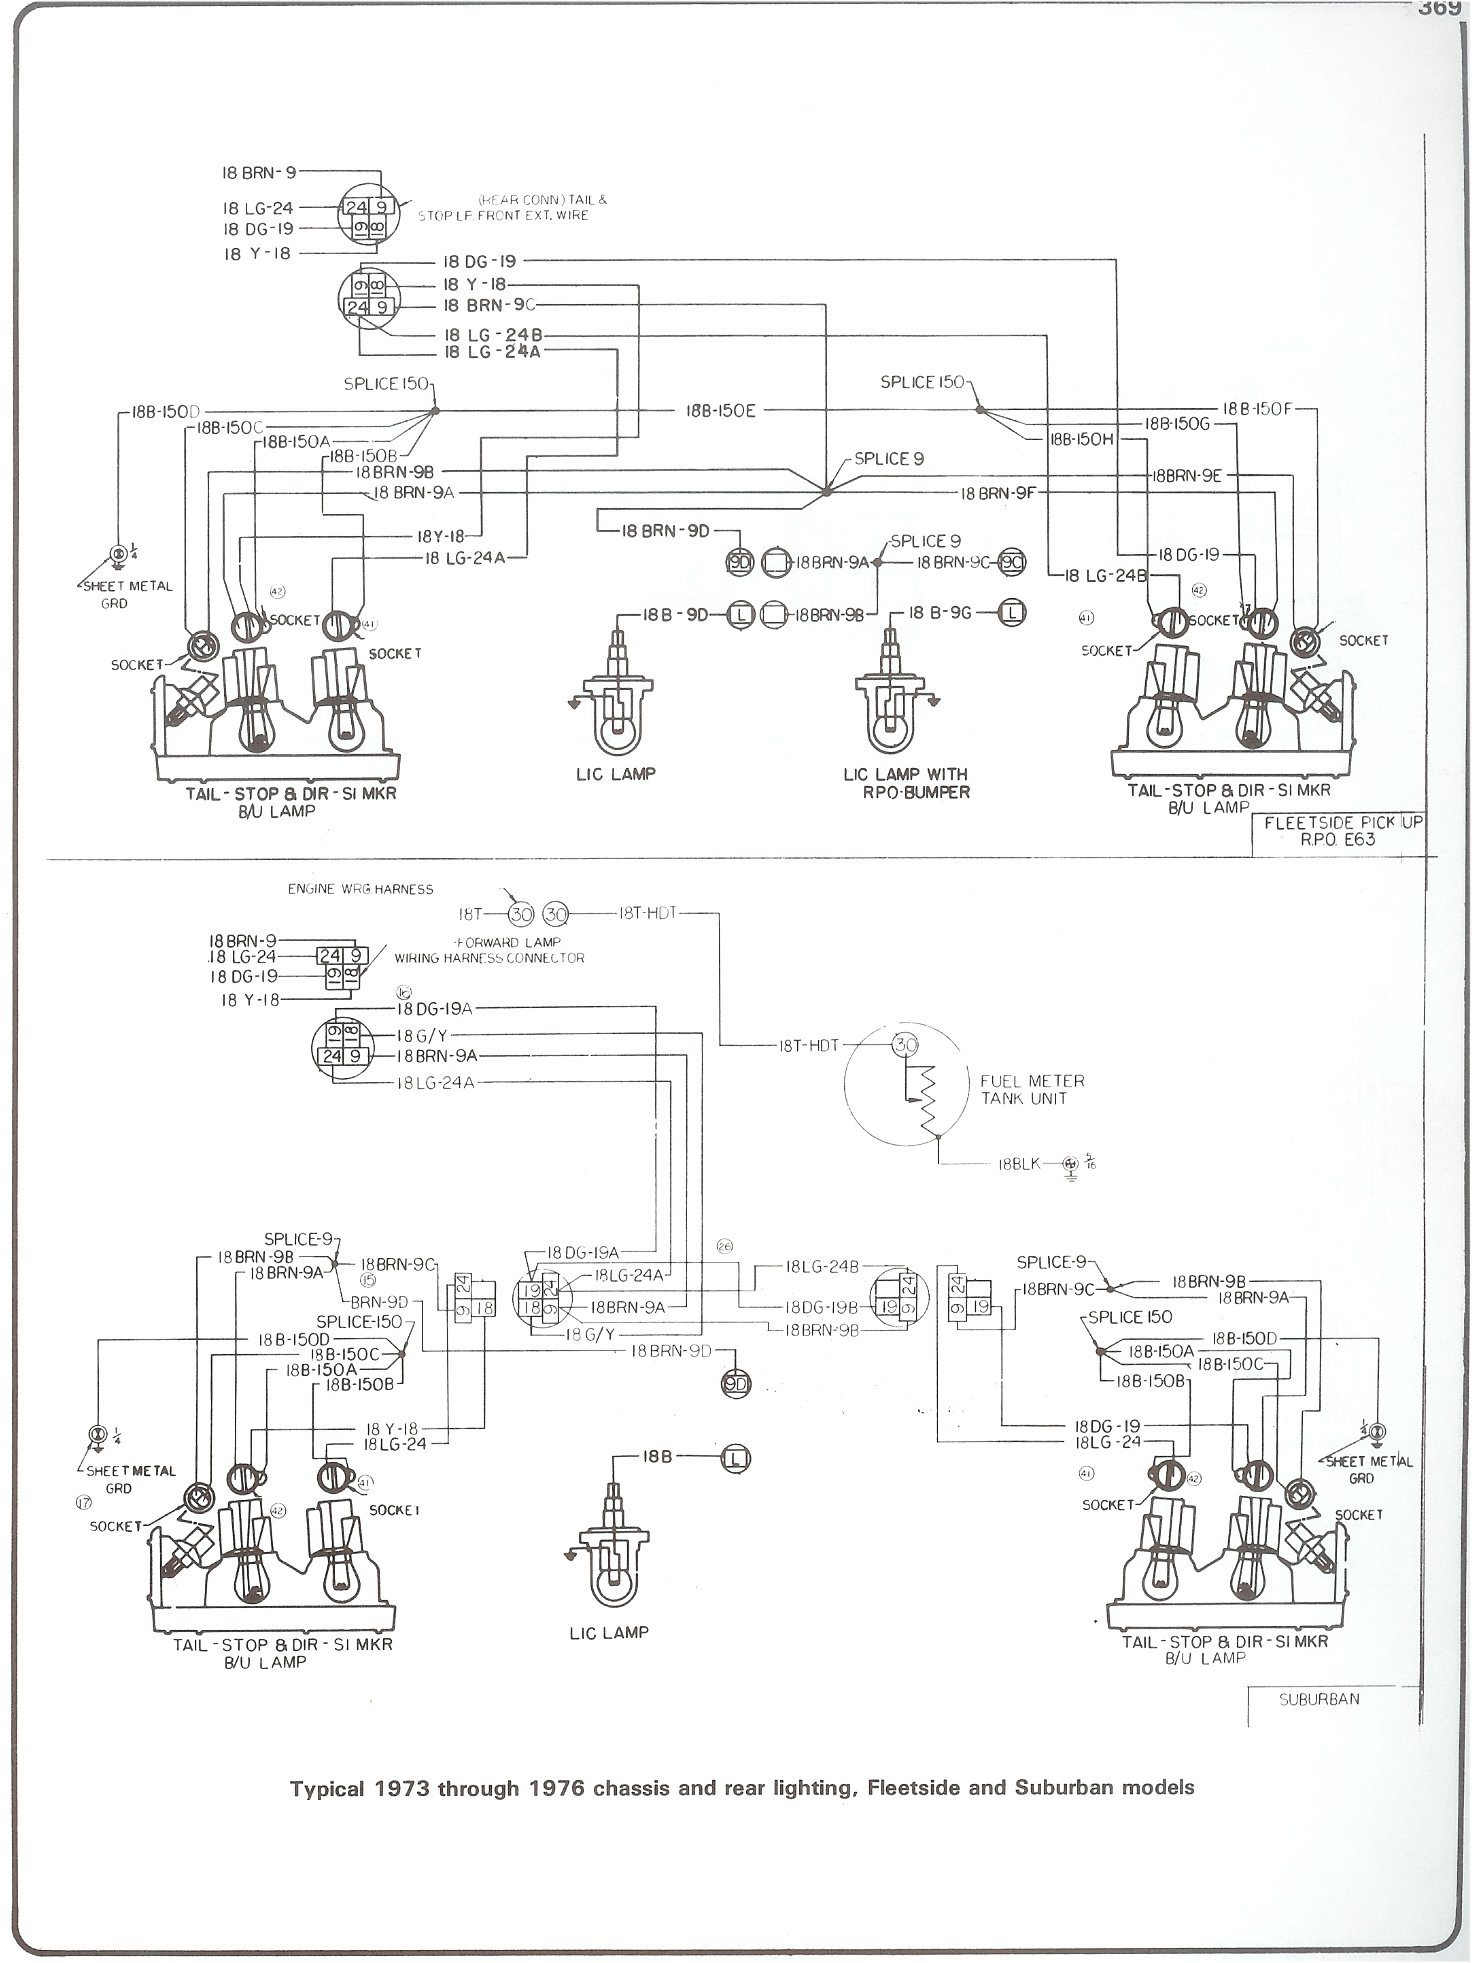 Complete 73-87 Wiring Diagrams on chevy ignition switch diagram, 1990 454 chevy engine diagram, gmc truck wiring diagram, fleetwood rv wiring diagram, chevy p30 dimensions, chevy p30 transmission, chevy p30 engine, chevy p30 chassis, chevy p30 exhaust system, chevy p30 brakes, chevy p30 steering, chevy p30 rear suspension, chevy p30 tires, chevy p30 drive shaft, fleetwood mobile home wiring diagram, chevy p30 electrical, chevy p30 regulator diagram, 1978 chevrolet wiring diagram, chevy p30 parts, chevy p30 relay,